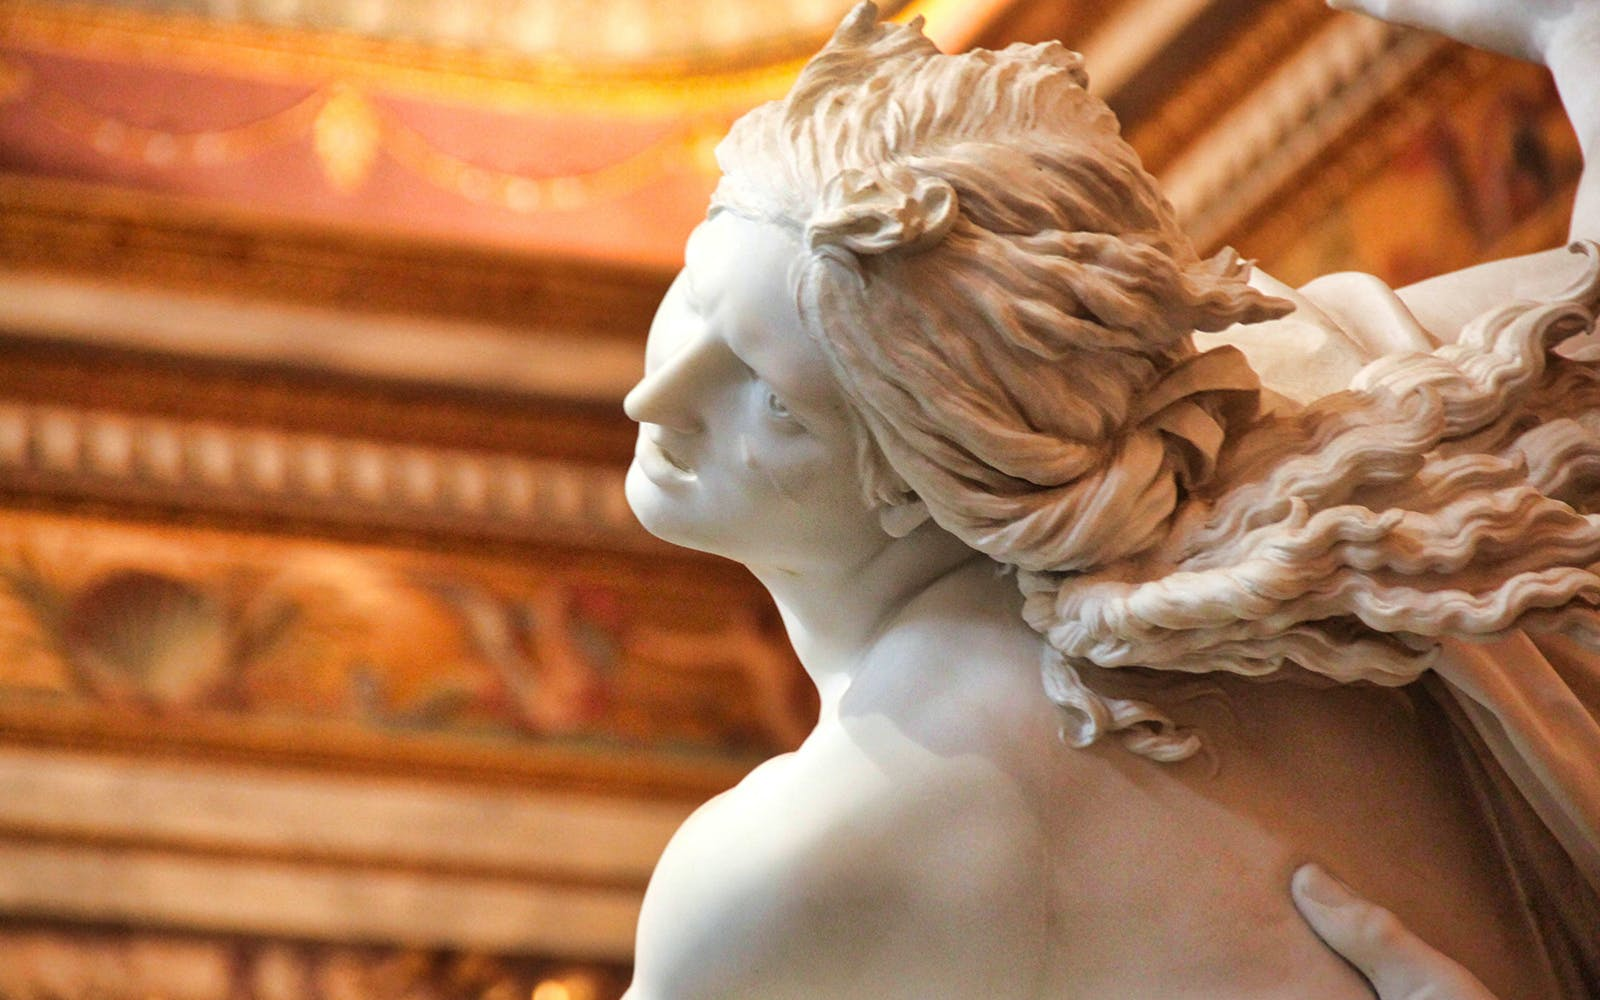 Borghese Gallery Small Group Tour with Bernini, Caravaggio & Raphael